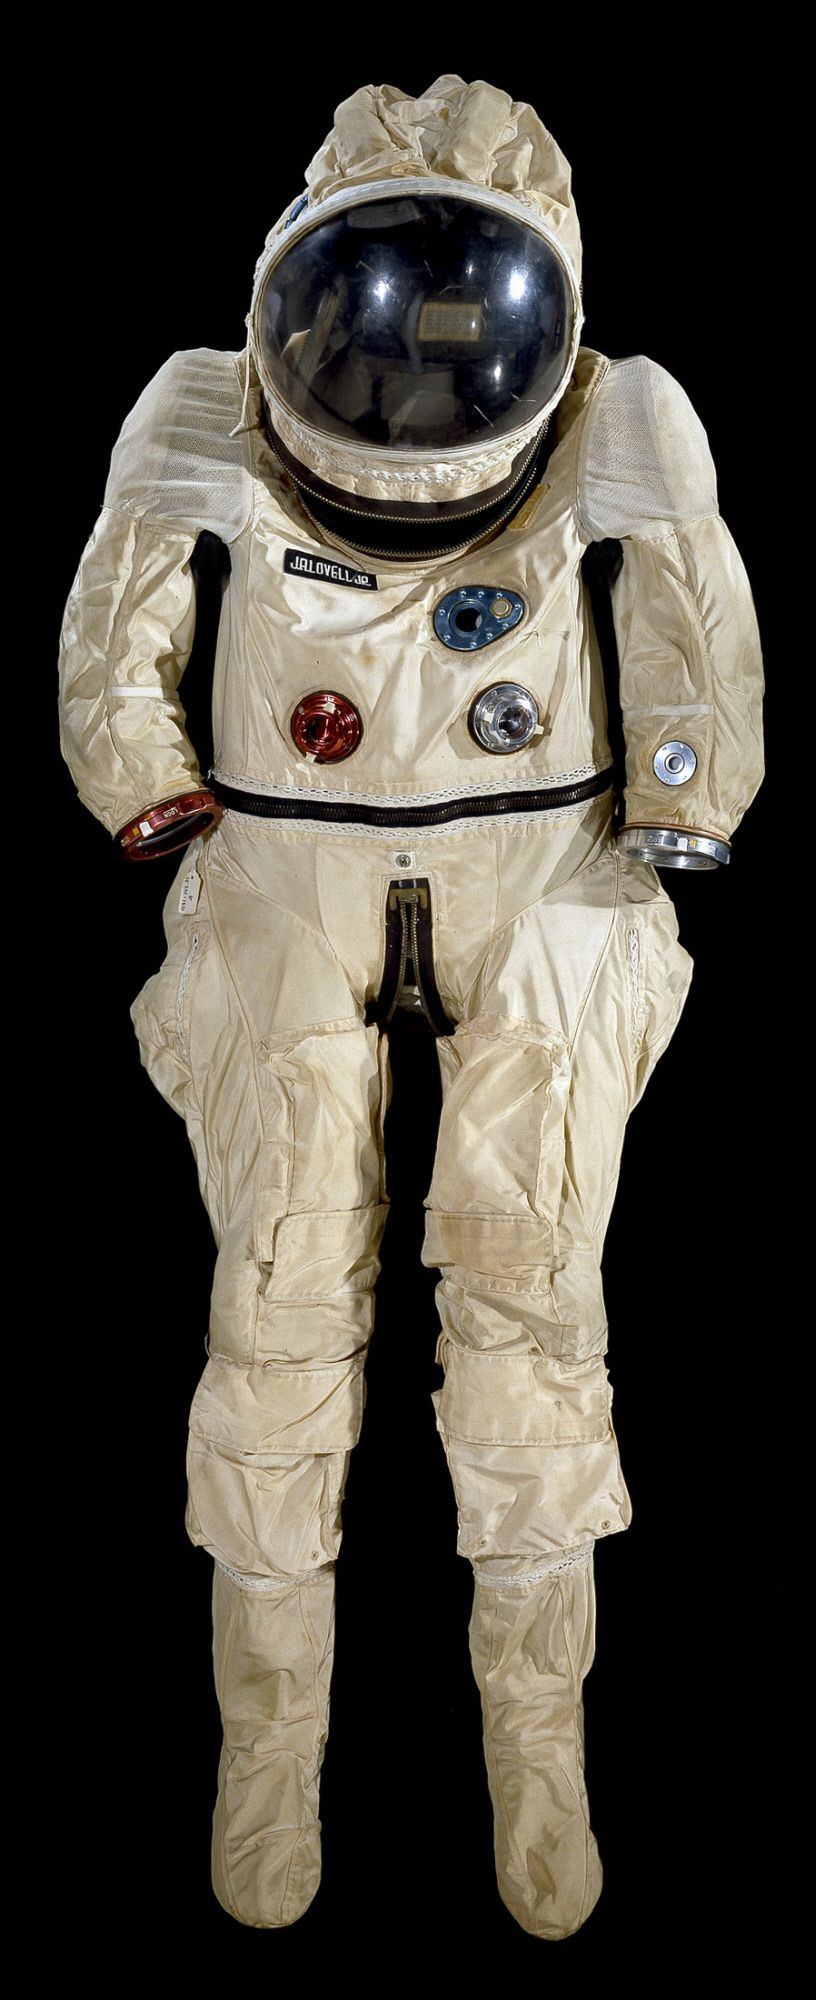 G5-C spacesuit worn by astronaut James Lovell during ...